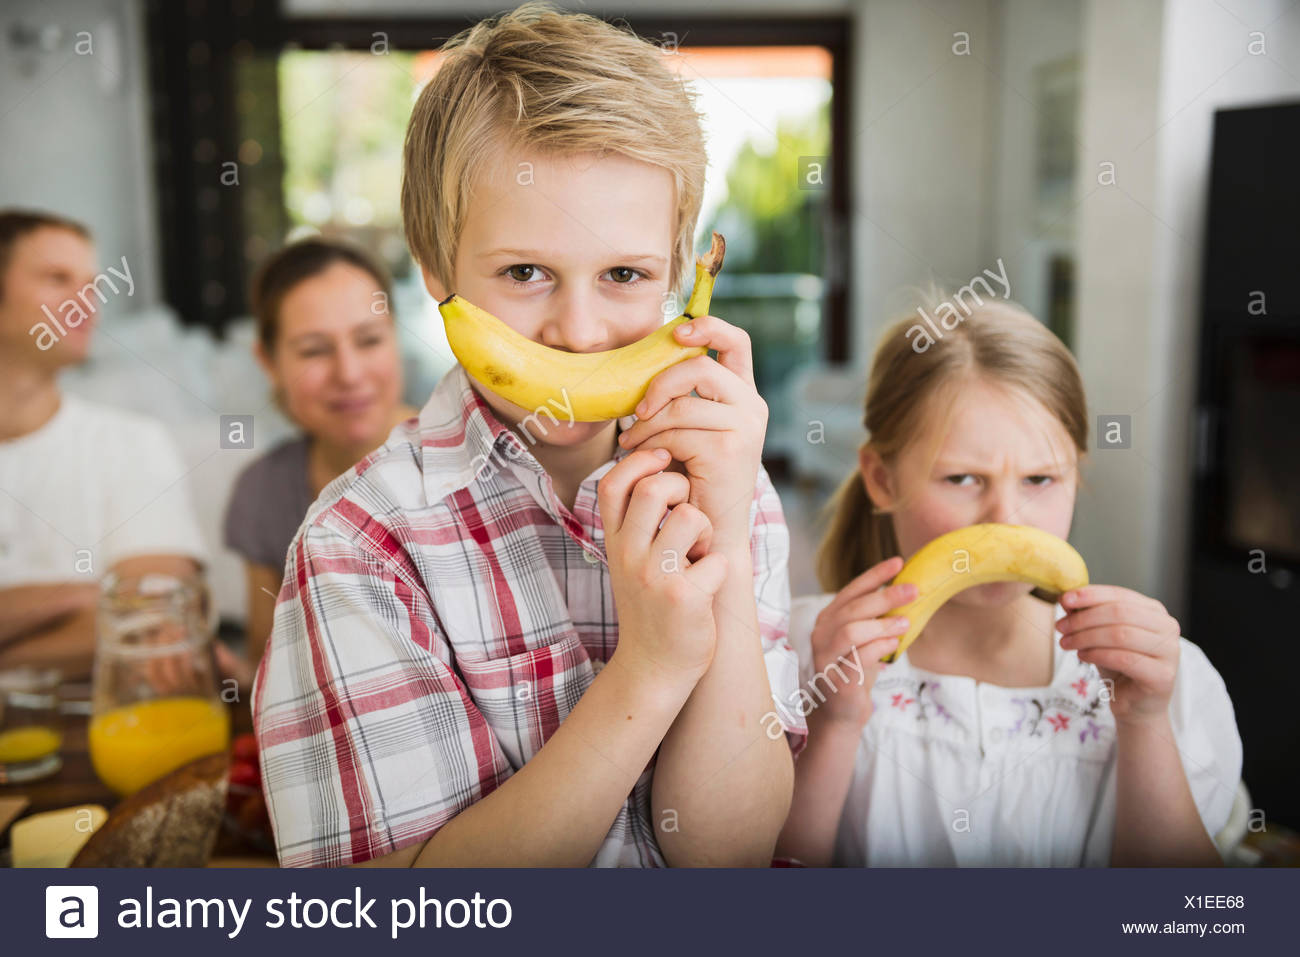 Brother and sister having fun with two bananas - Stock Image